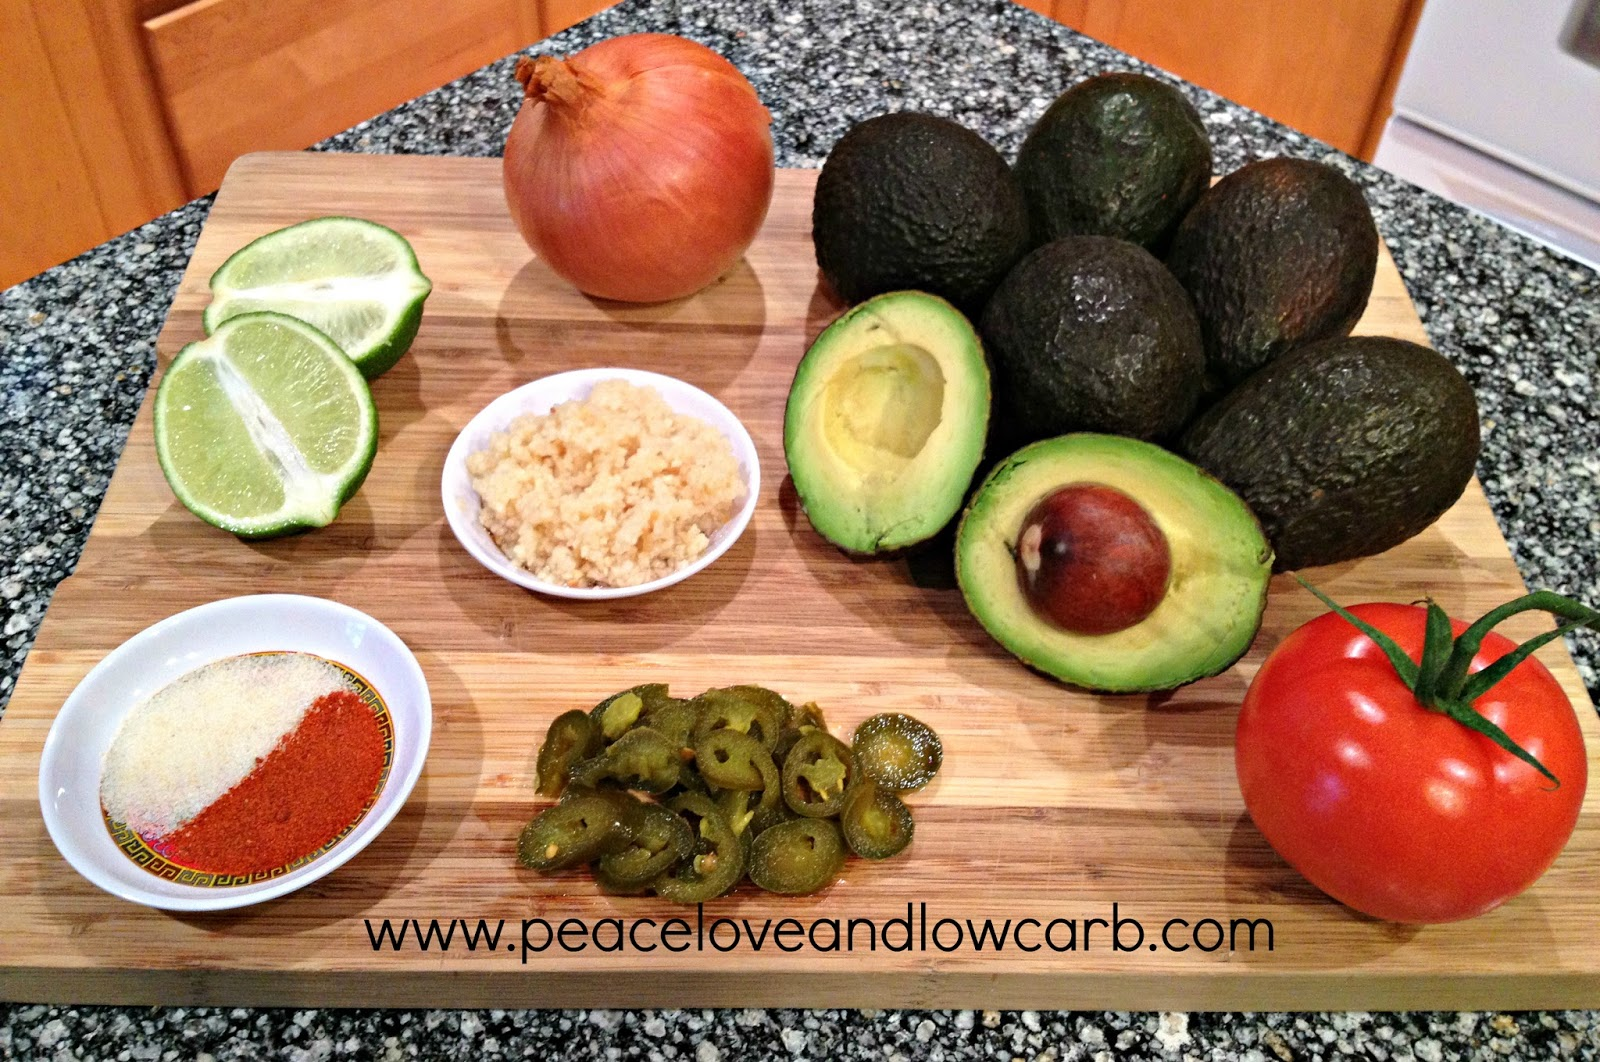 jon's guacamole - low carb, gluten free, paleo | peace love and low carb